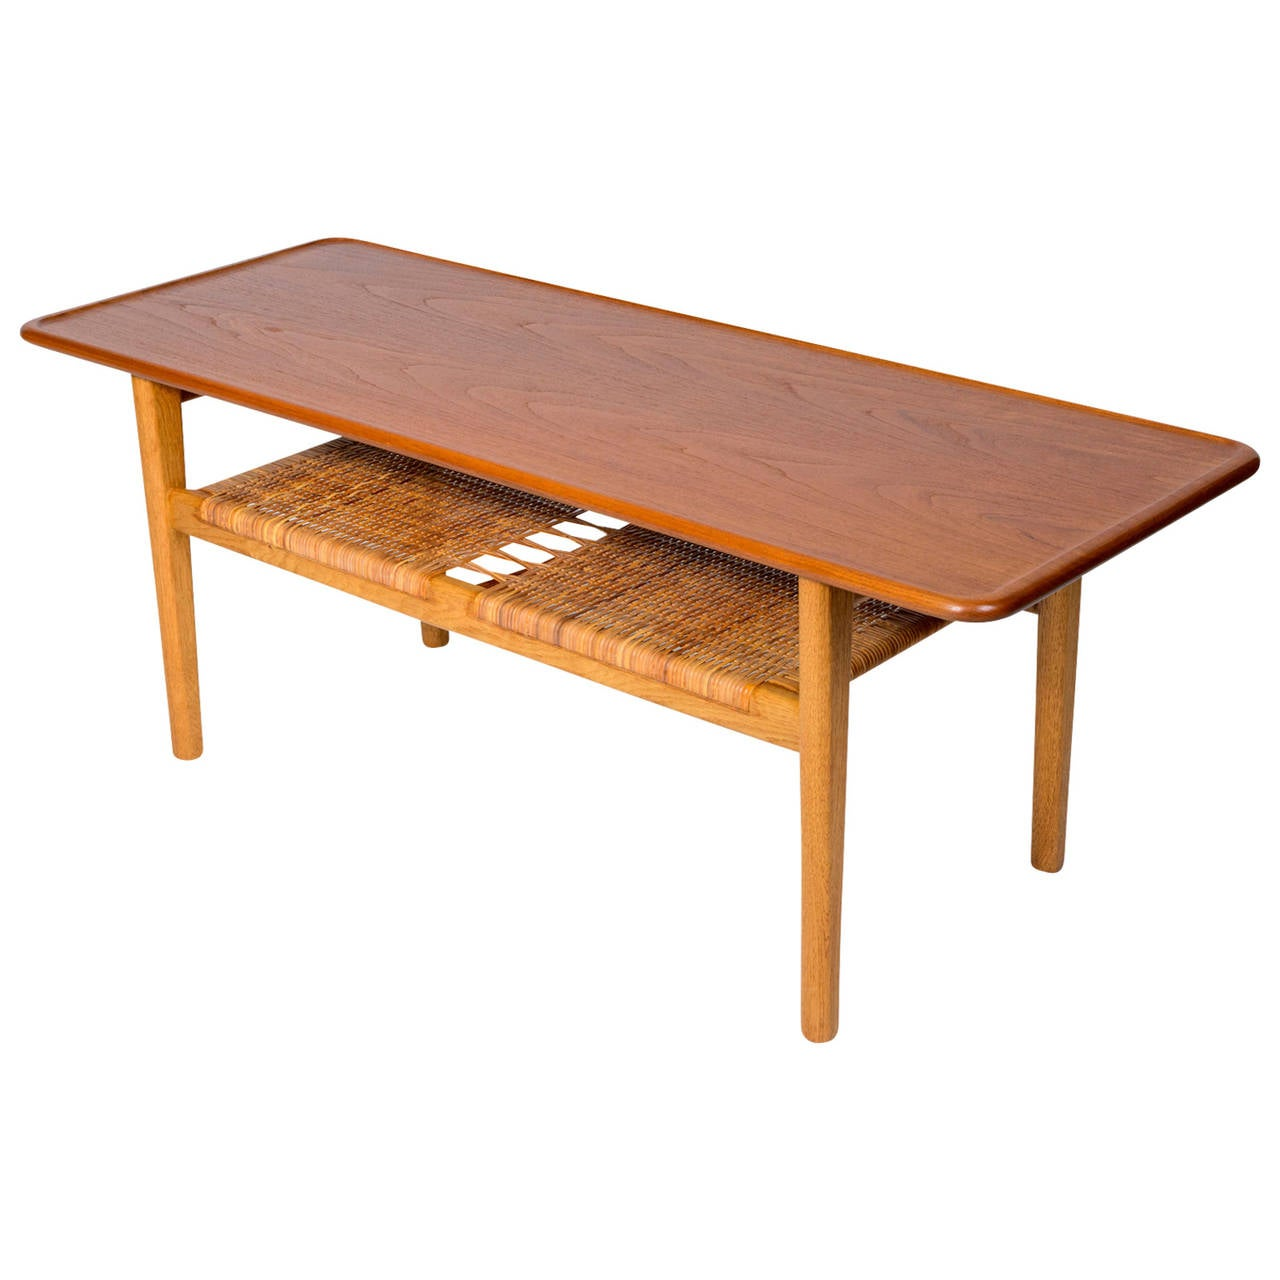 Hans wegner at 10 coffee table for sale at 1stdibs - Archives departementales 33 tables decennales ...